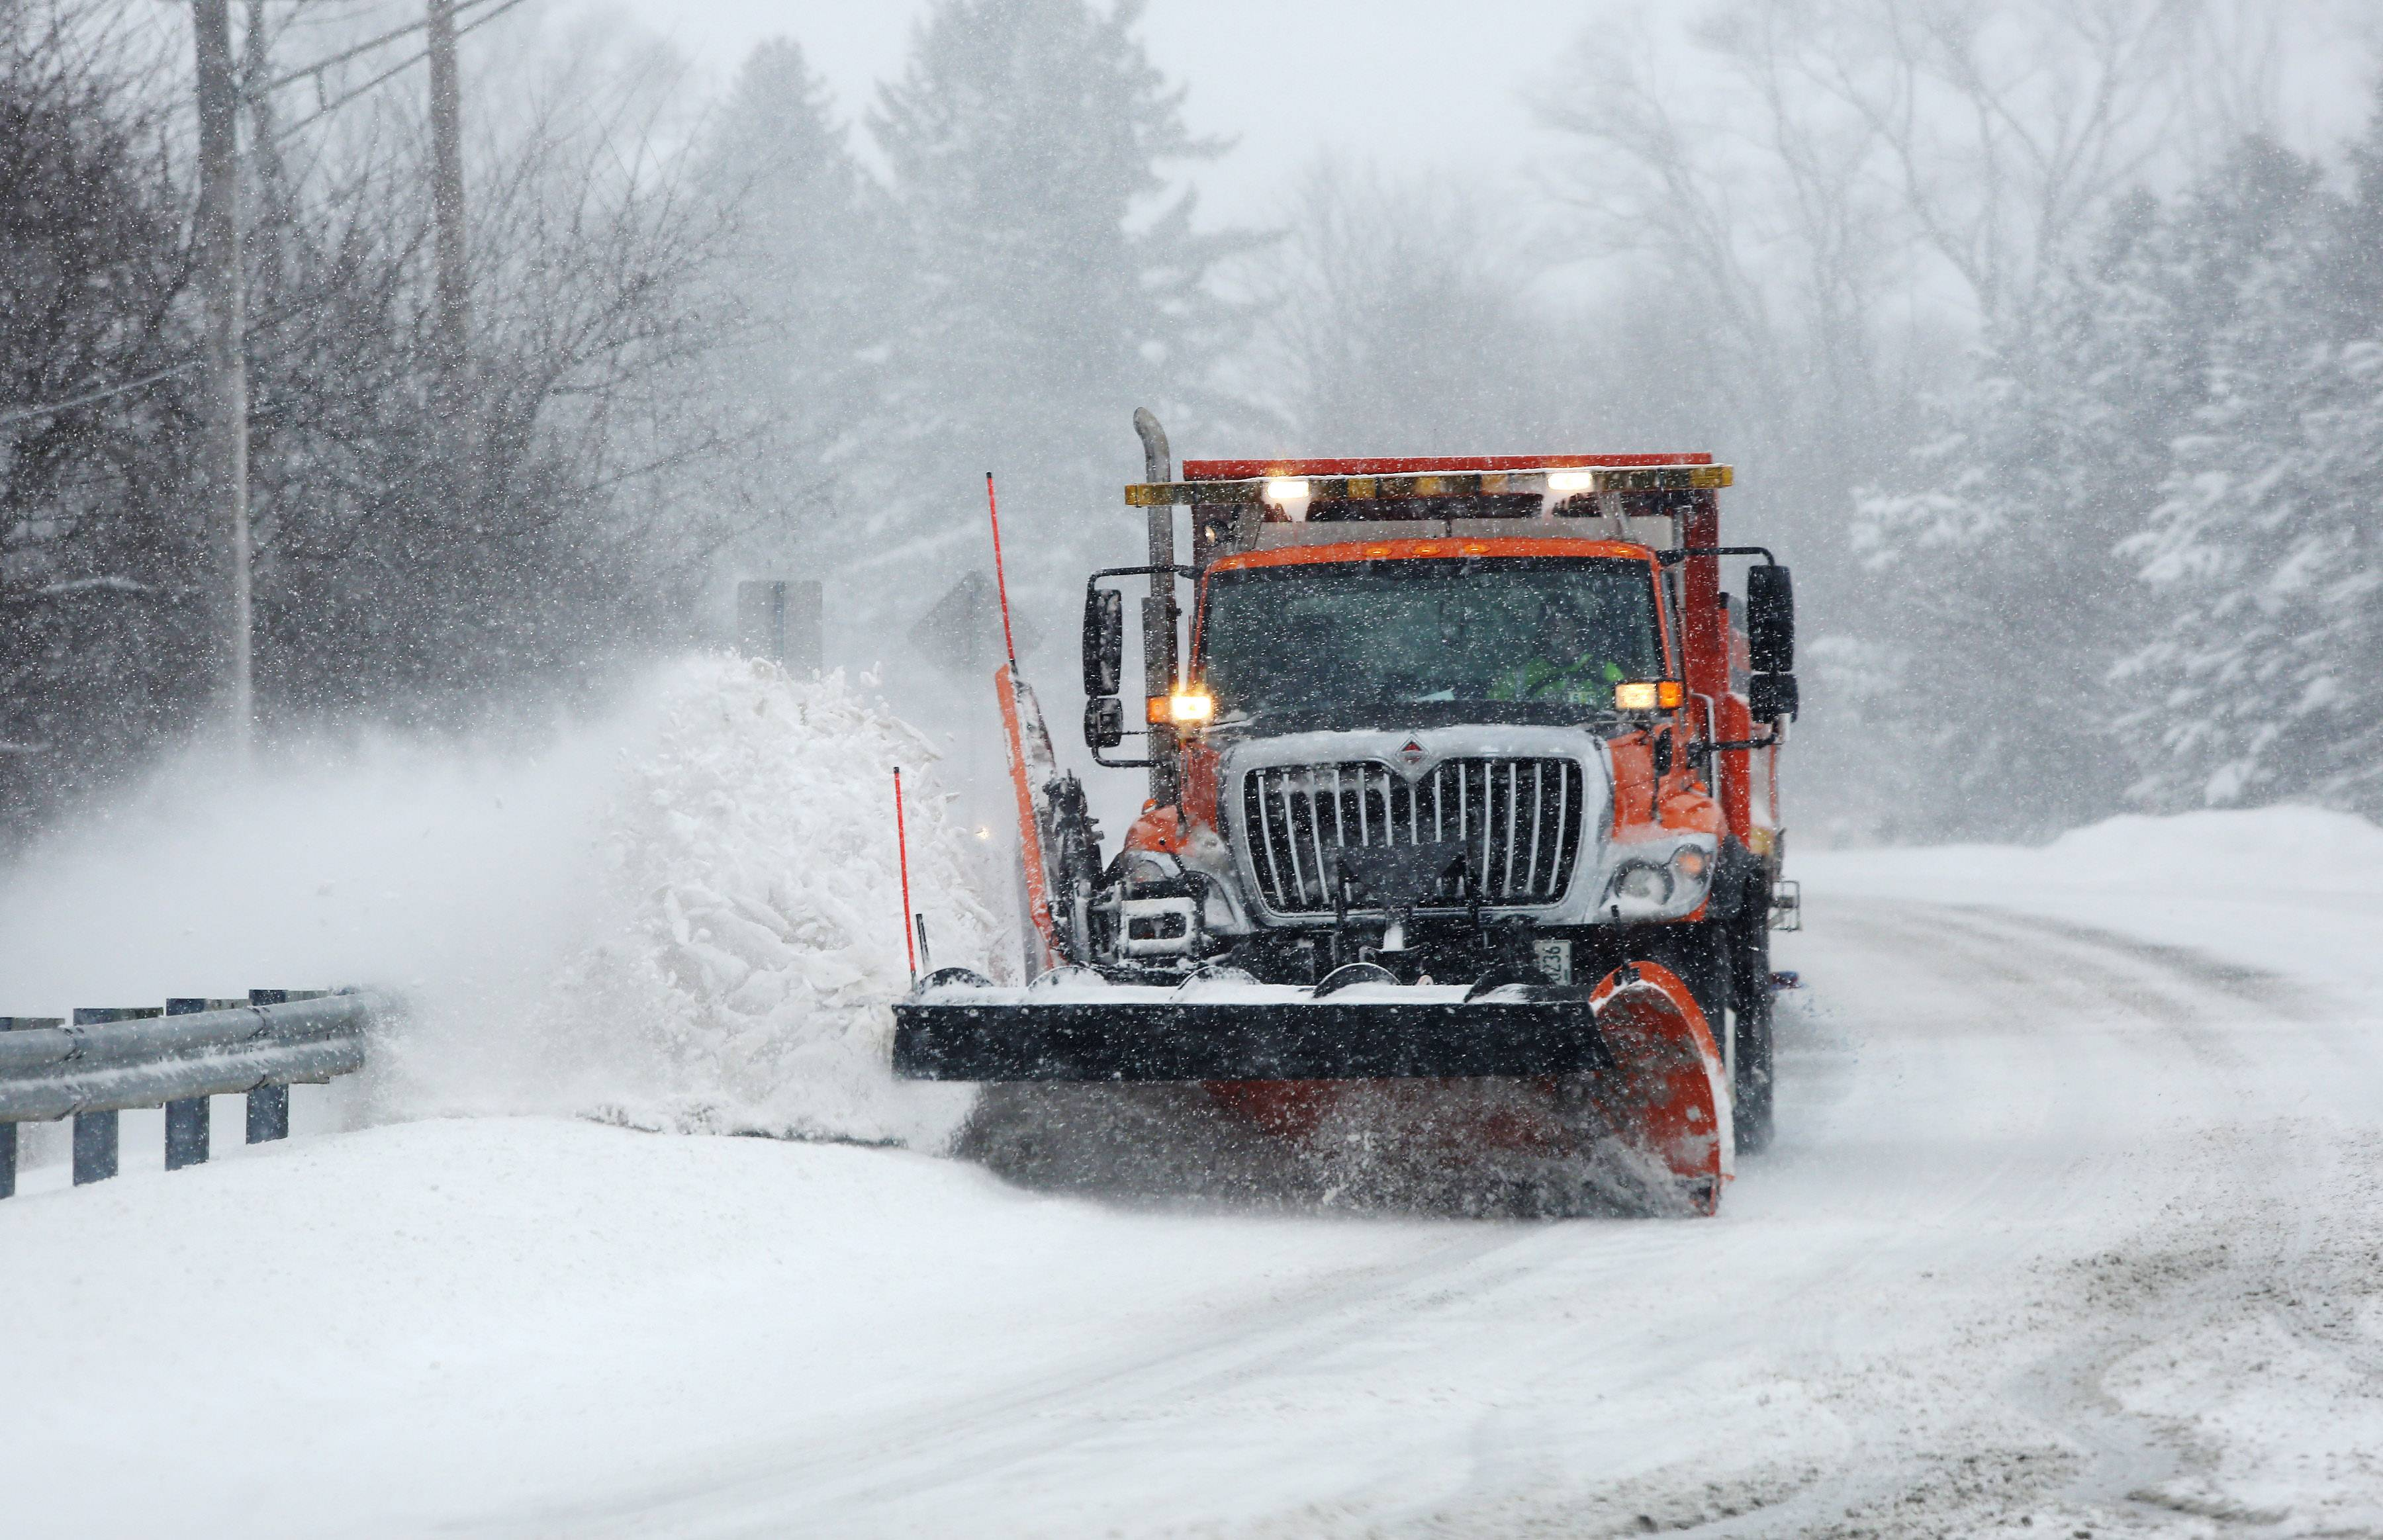 A Village of Wauconda Public Works plow clears Main Street during a snowstorm that hit Lake County throughout the day Sunday. Snow plows were having a hard time keeping the roads clear and many places experienced whiteout conditions.